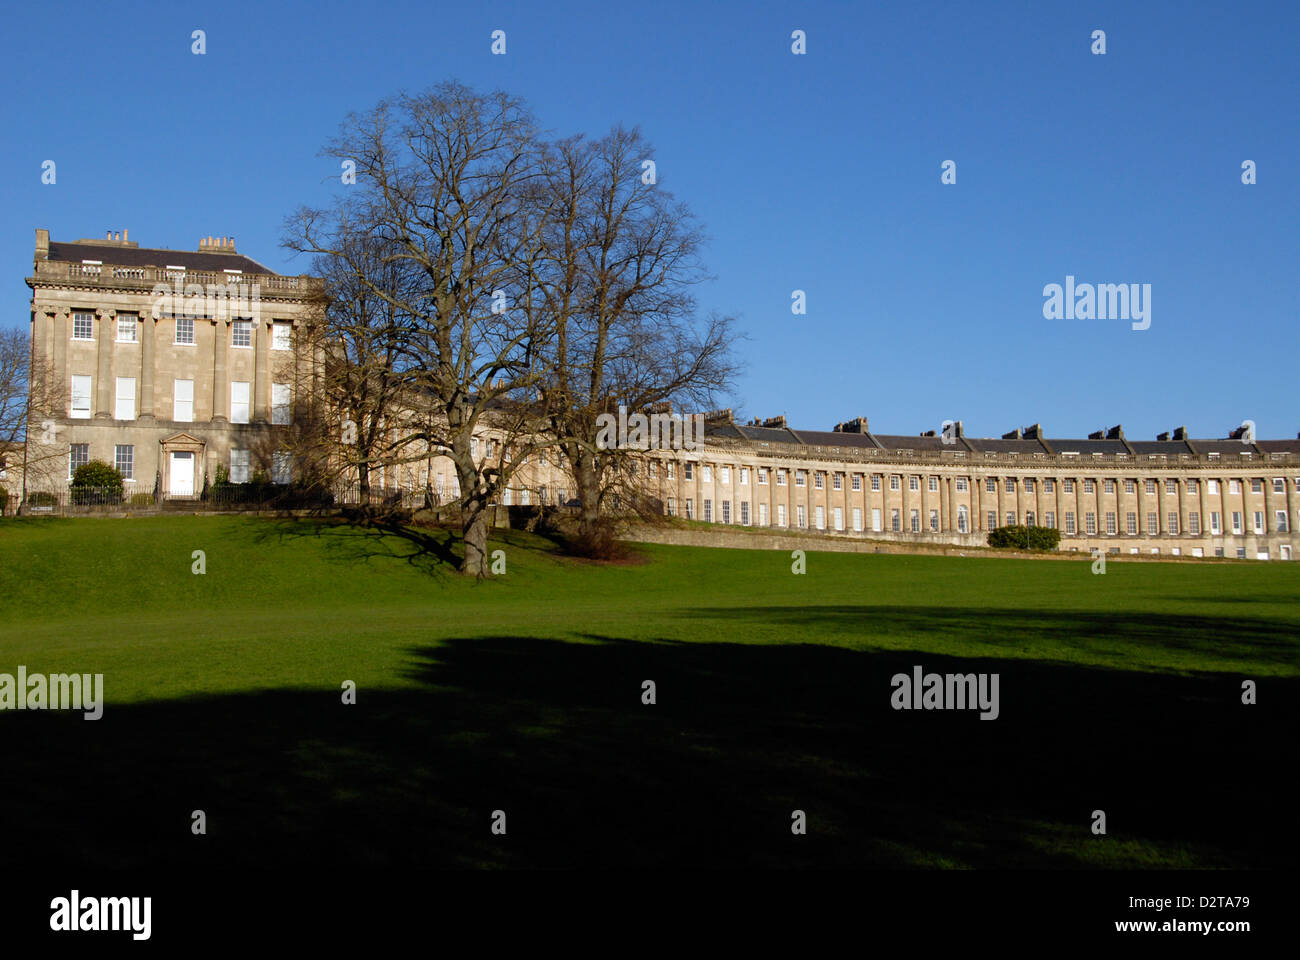 Royal Crescent perfect Georgian architecture from 18th Century in Bath, UK Stock Photo